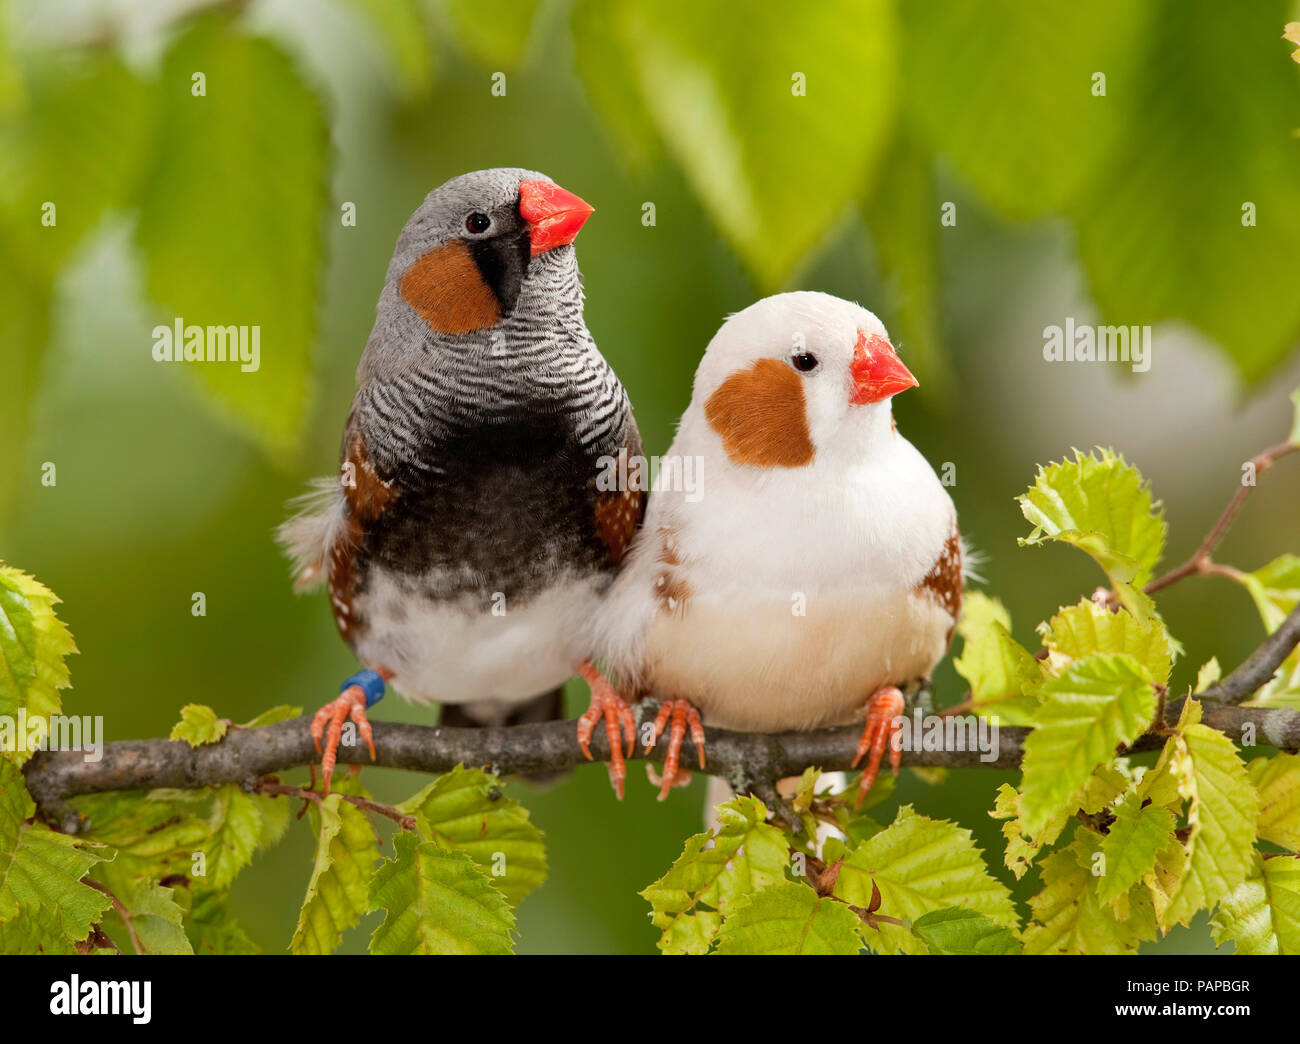 Zebra Finch (Taeniopygia guttata). Two adult birds perched on a twig. Germany - Stock Image